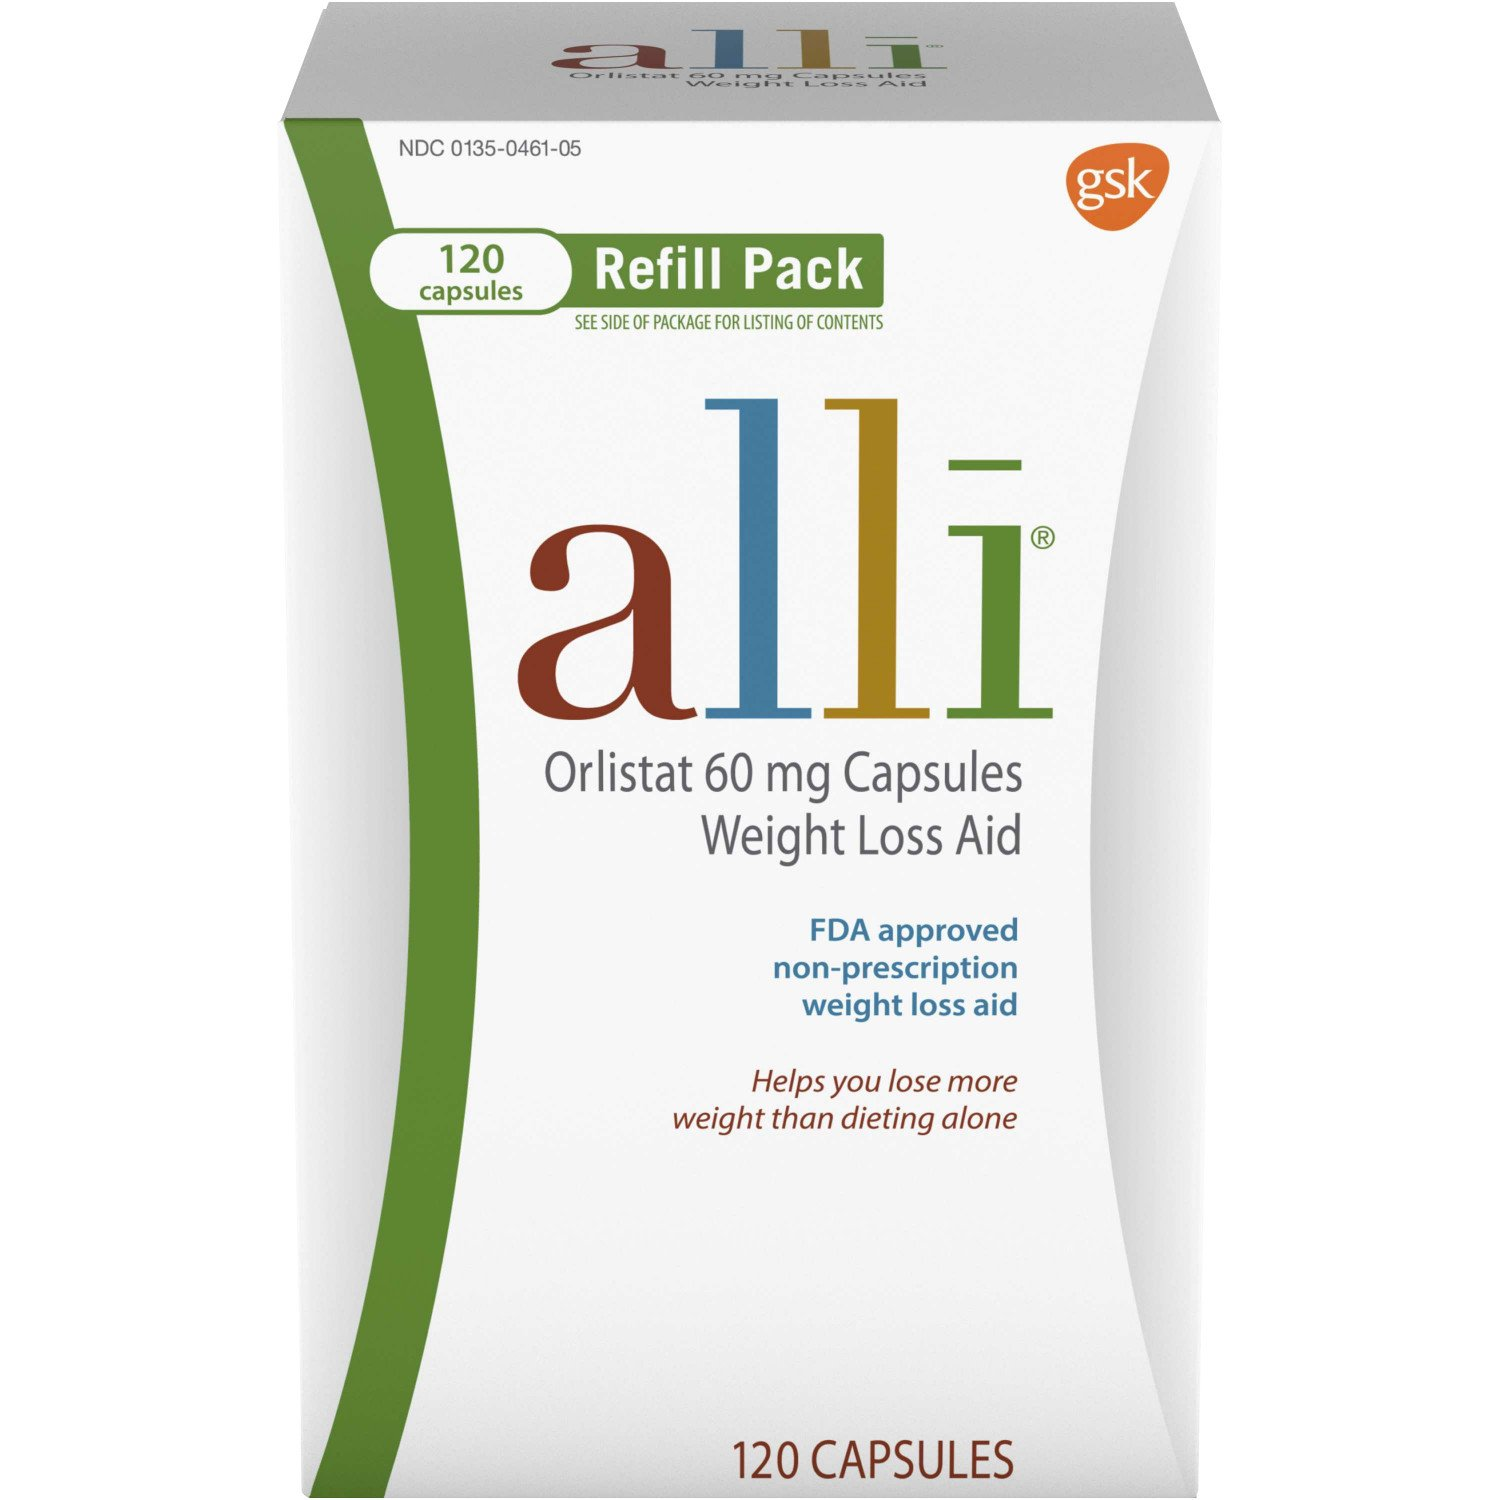 alli Weight Loss Diet Pills, Orlistat 60 mg Capsules, 120 Count Refill Pack by alli